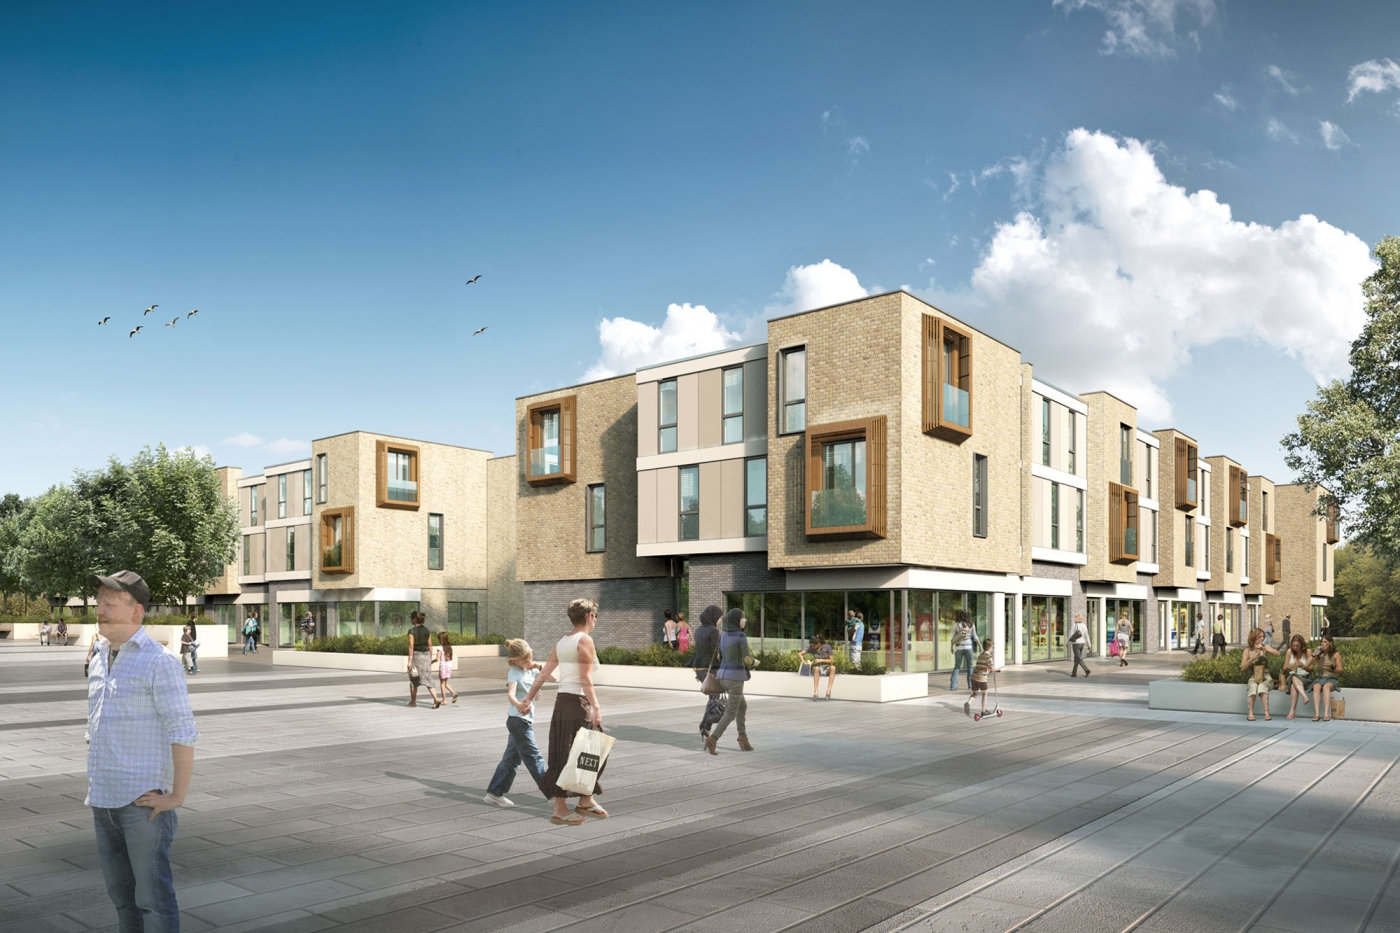 Affordable housing at NGP gains planning approval